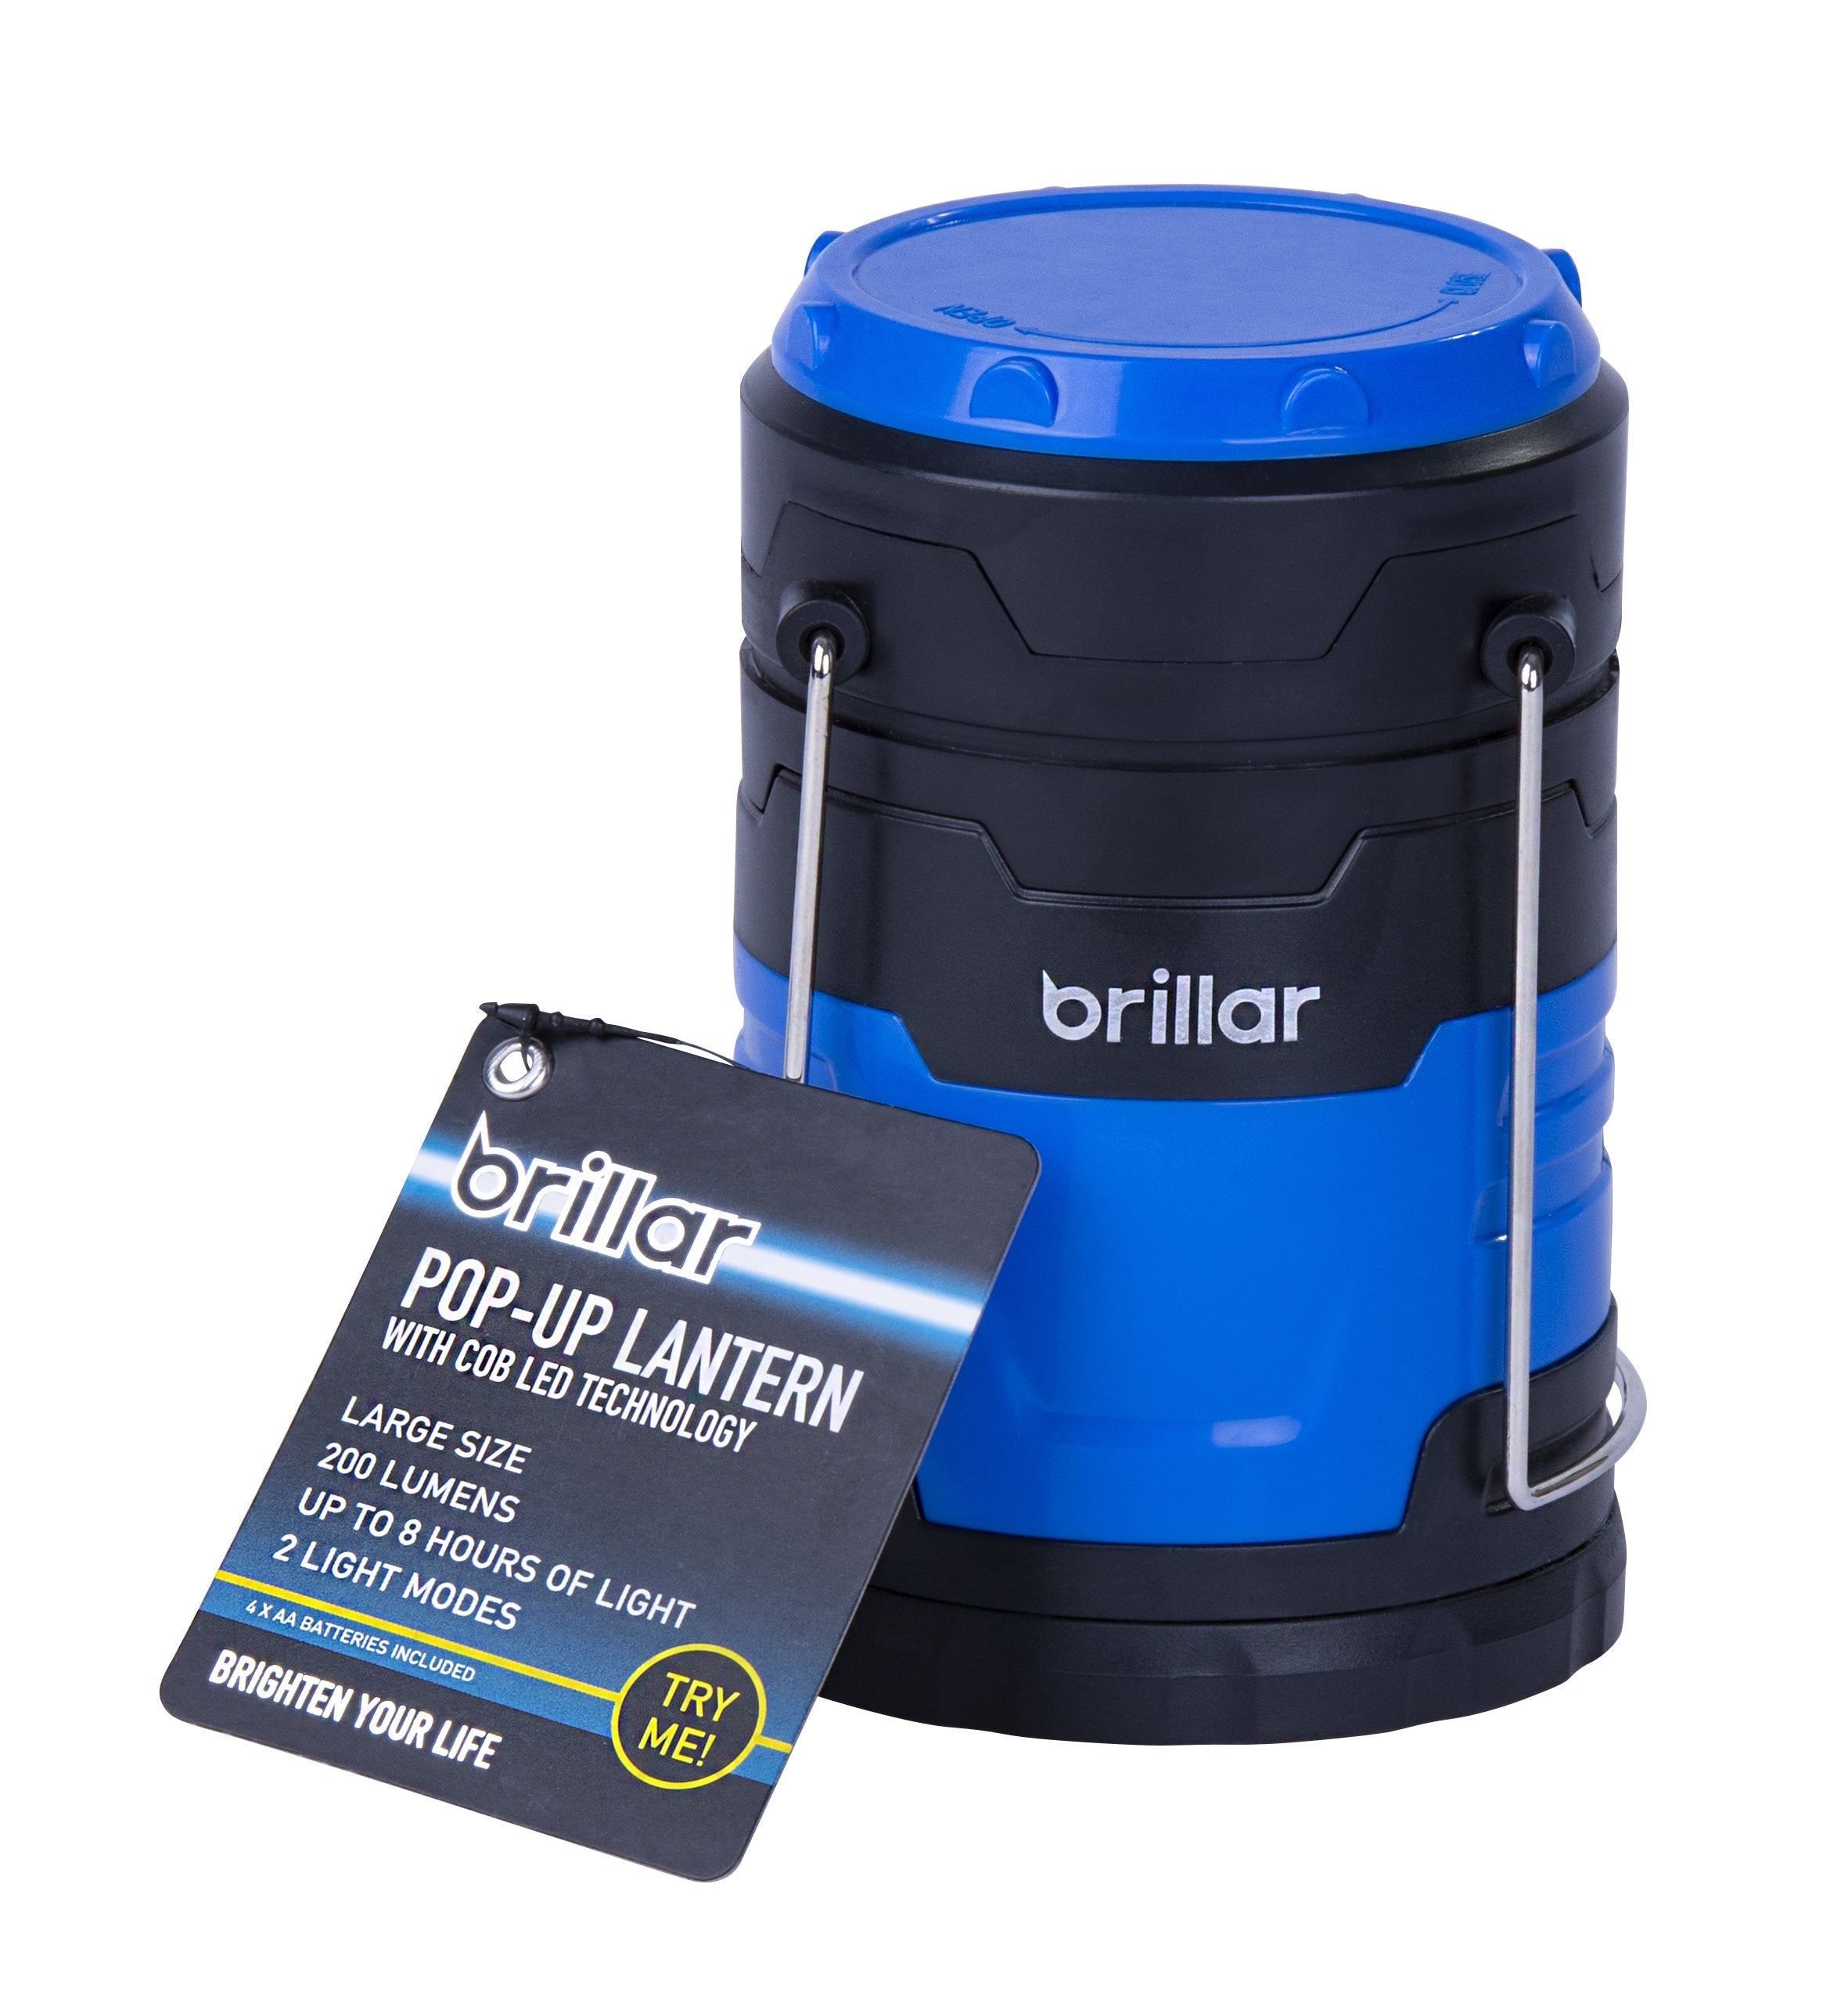 COB LED Large Popup Lantern BLUE Compact Design Durability Easy Carry Storage 4 AAA Batteries Included